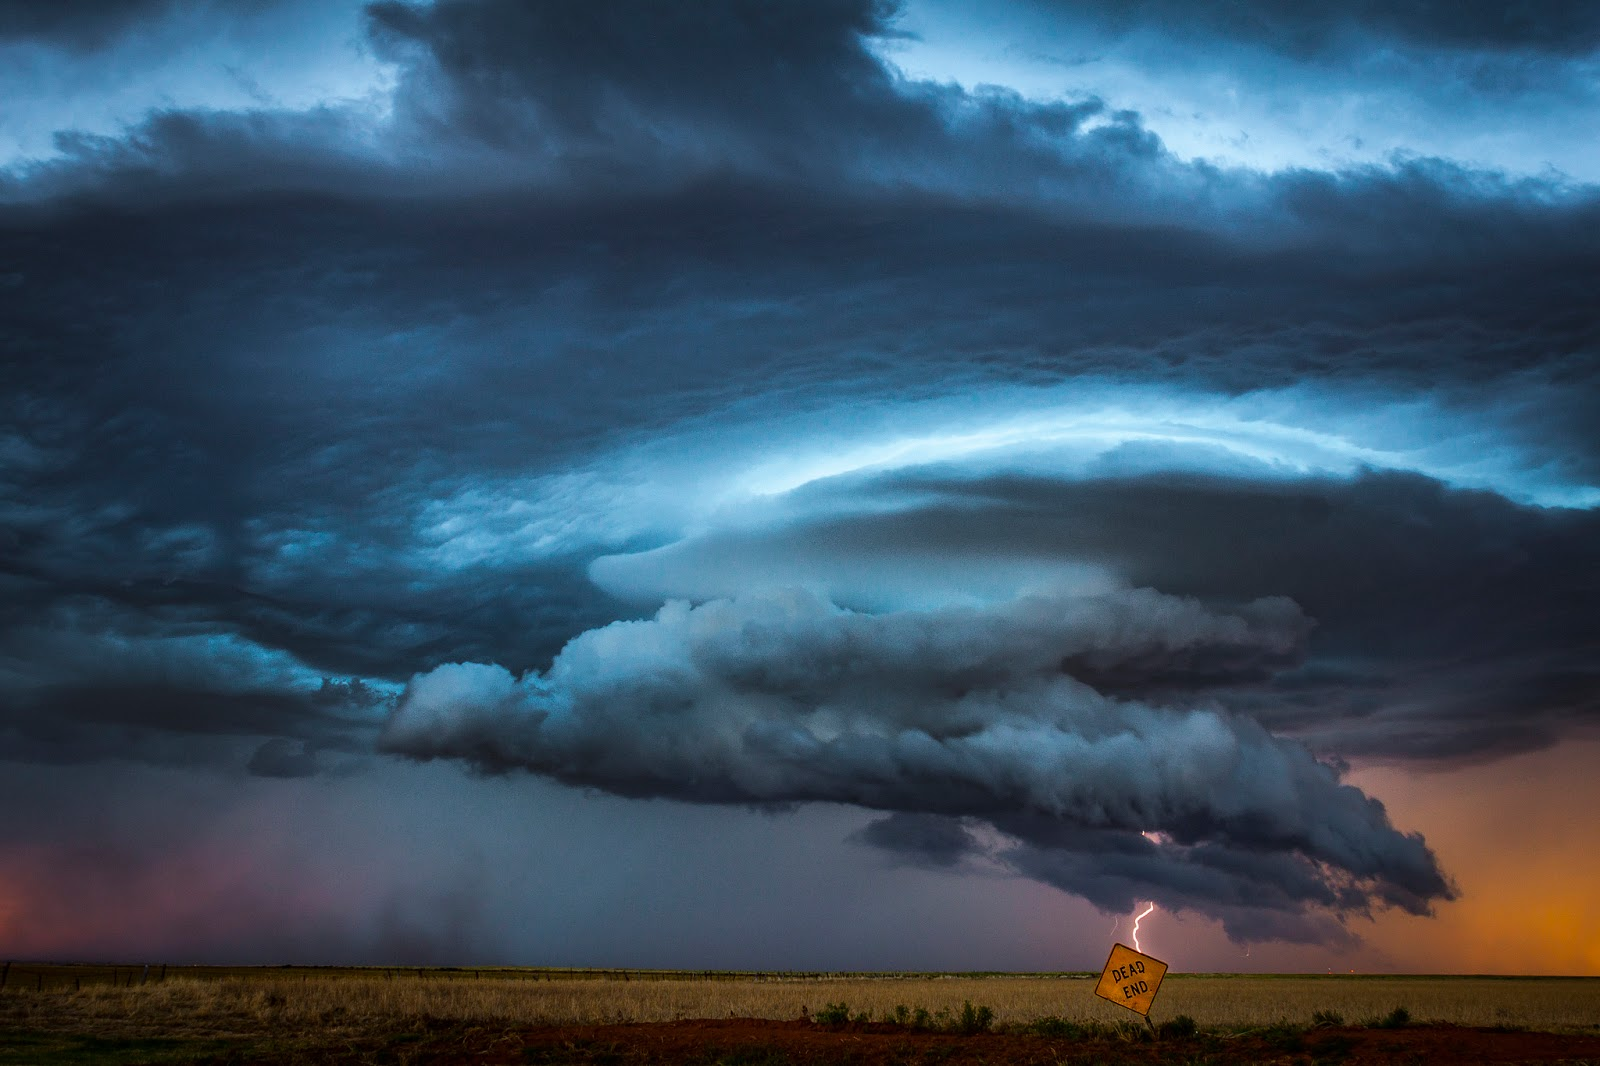 Supercell Thunderstorm At Night